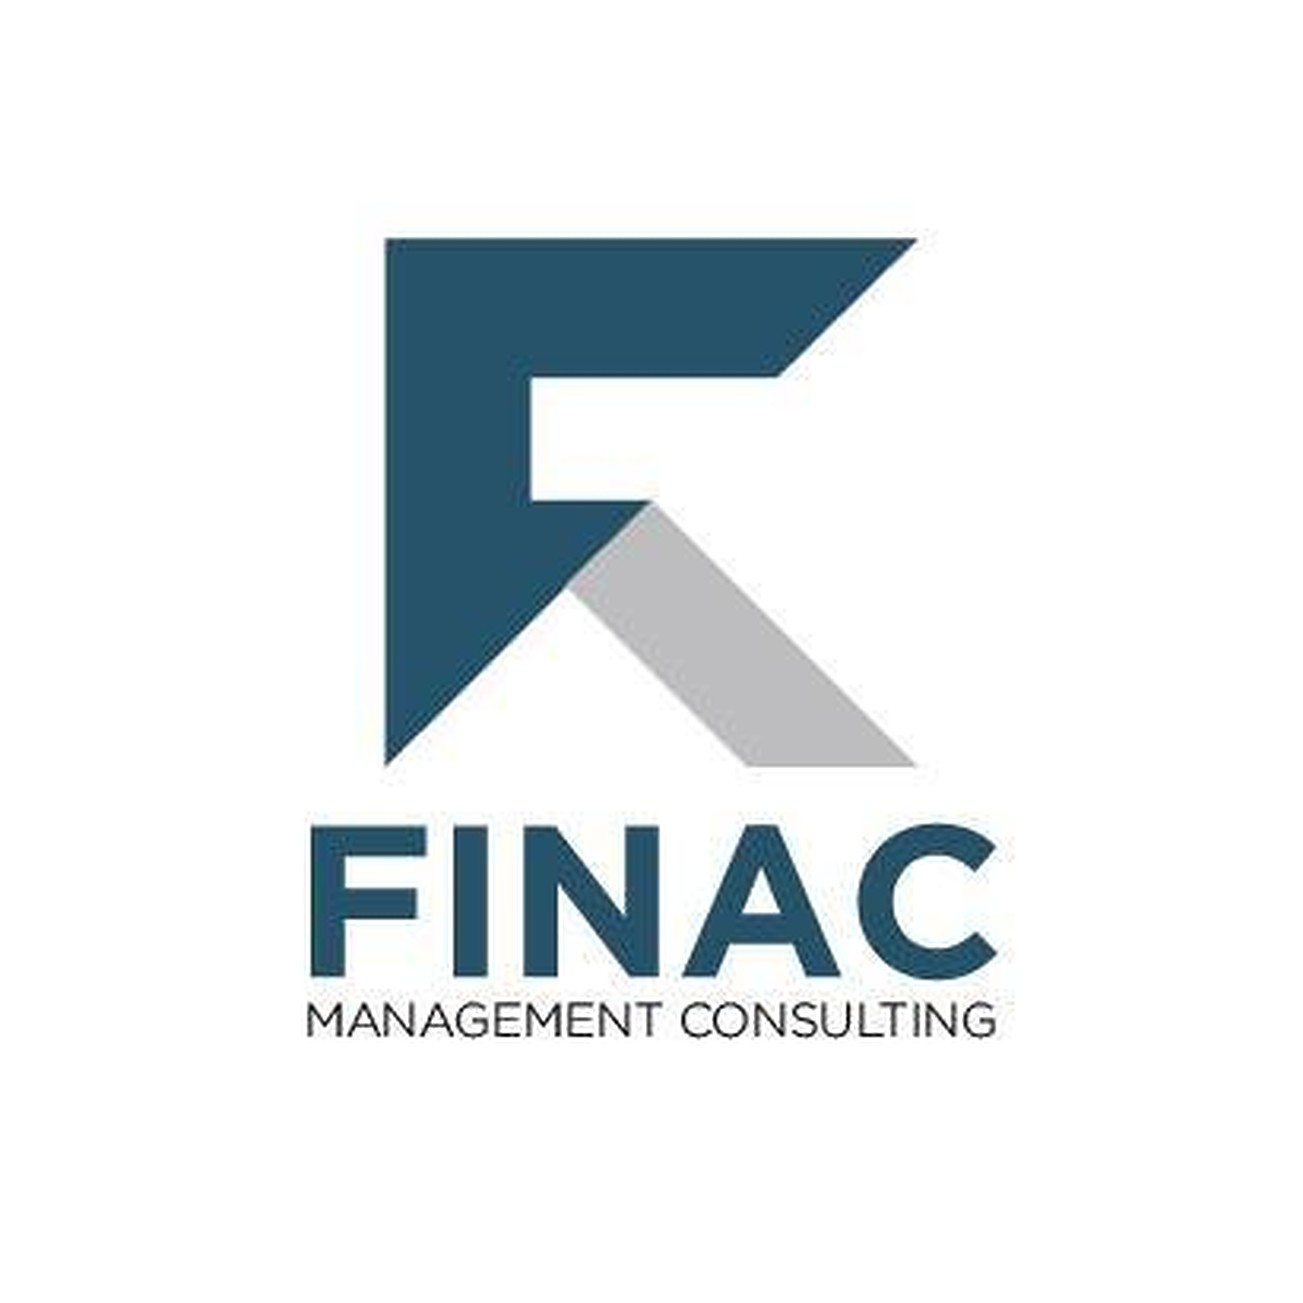 FINAC MANAGEMENT CONSULTING, TAX CONSULTANTS,  service in Kozhikode Town, Kozhikode